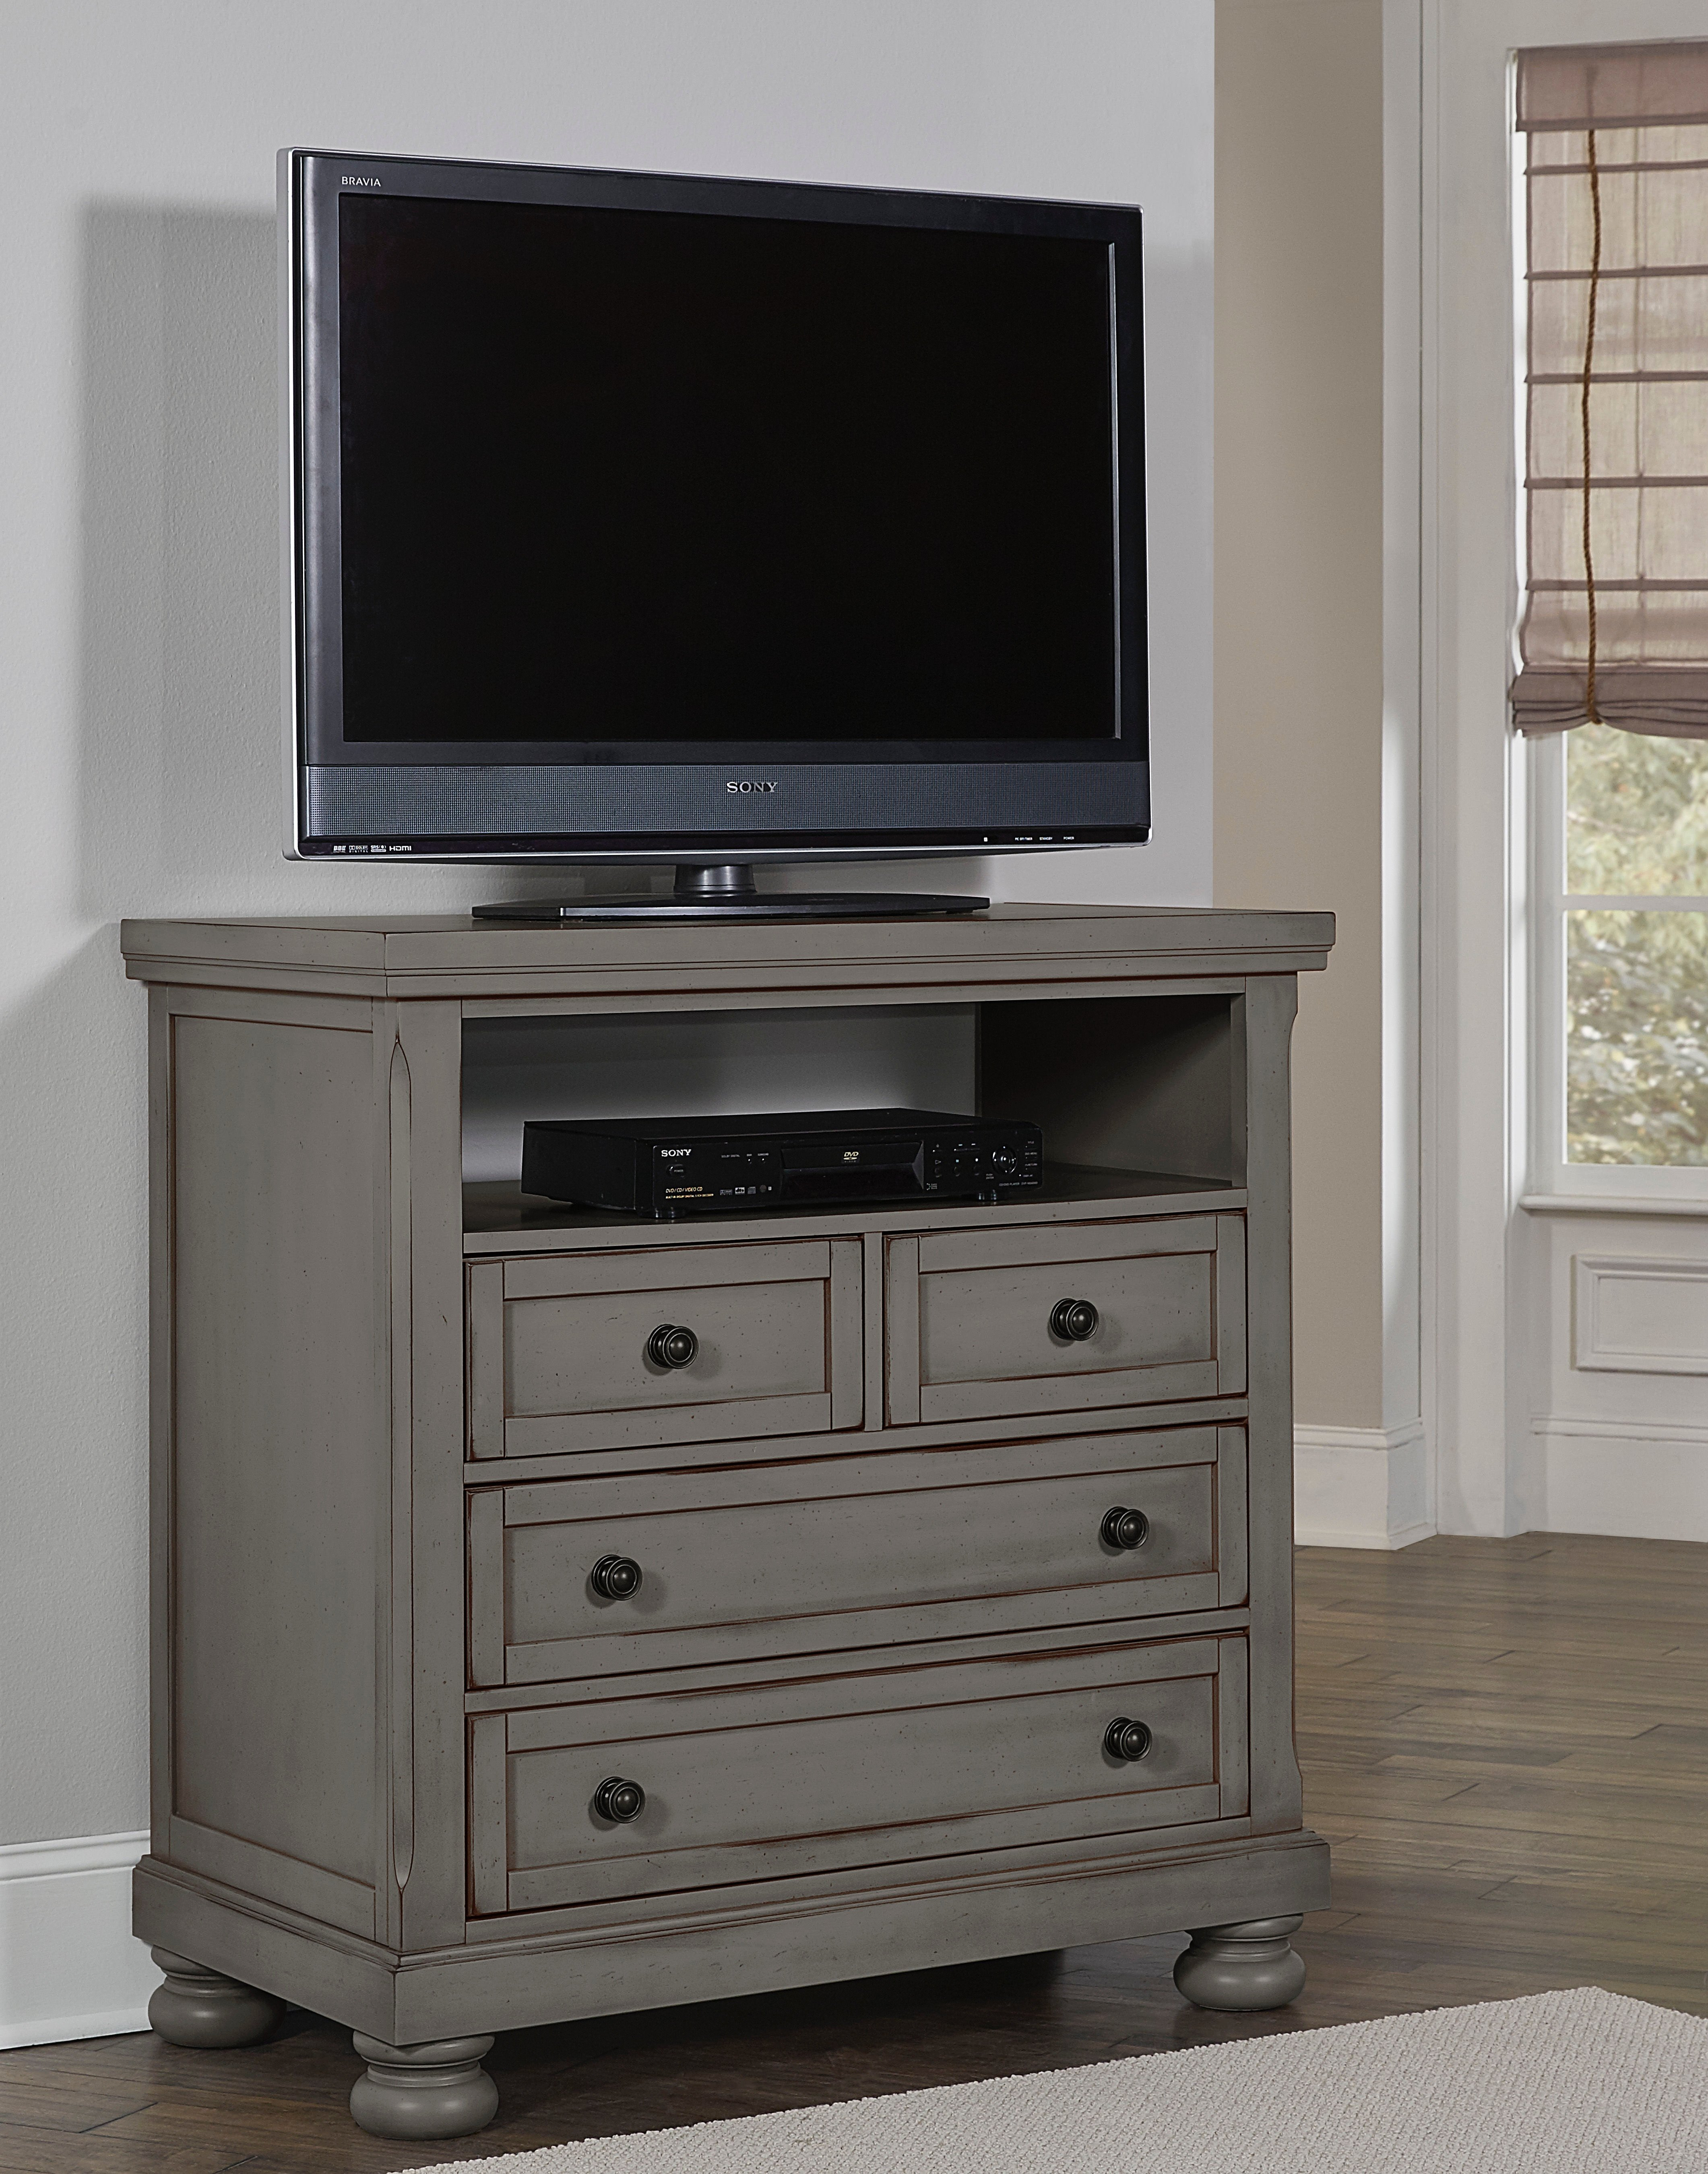 Vaughan Bassett Bedroom Set Awesome Vaughan Bassett Furniture Pany Home Entertainment